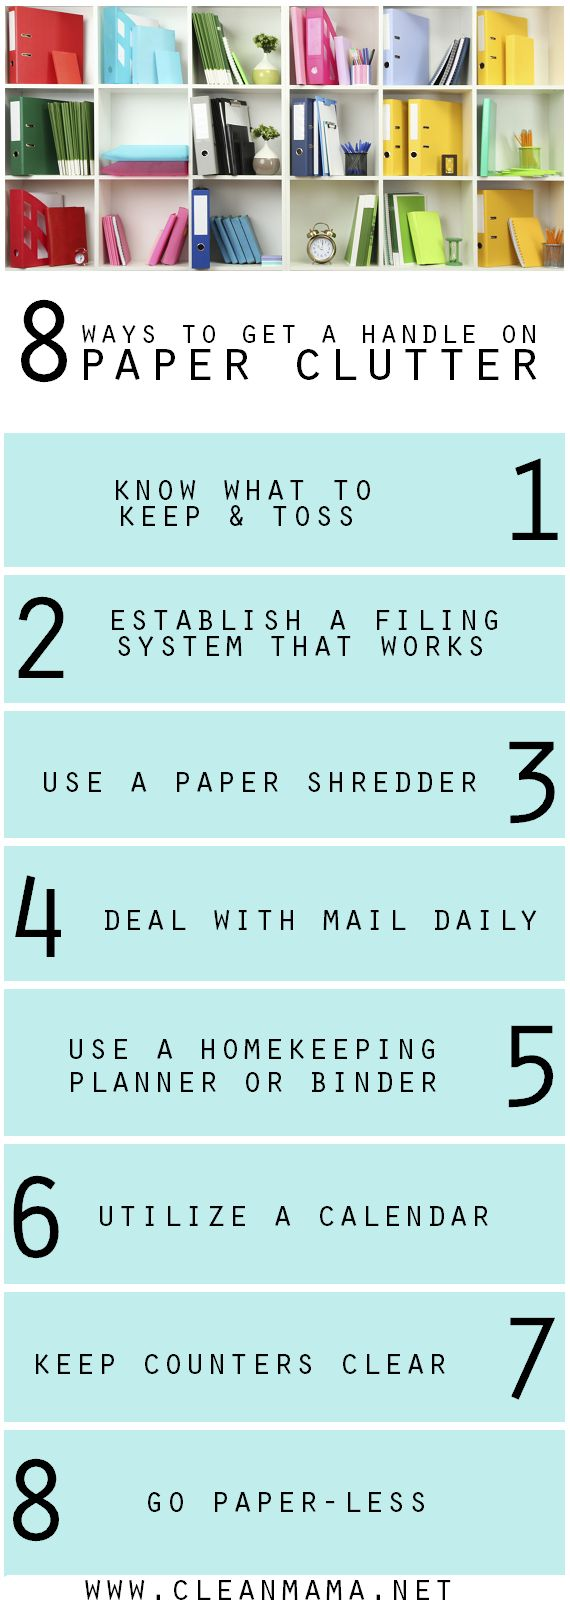 8 Ways to Get a Handle on Paper Clutter for Good